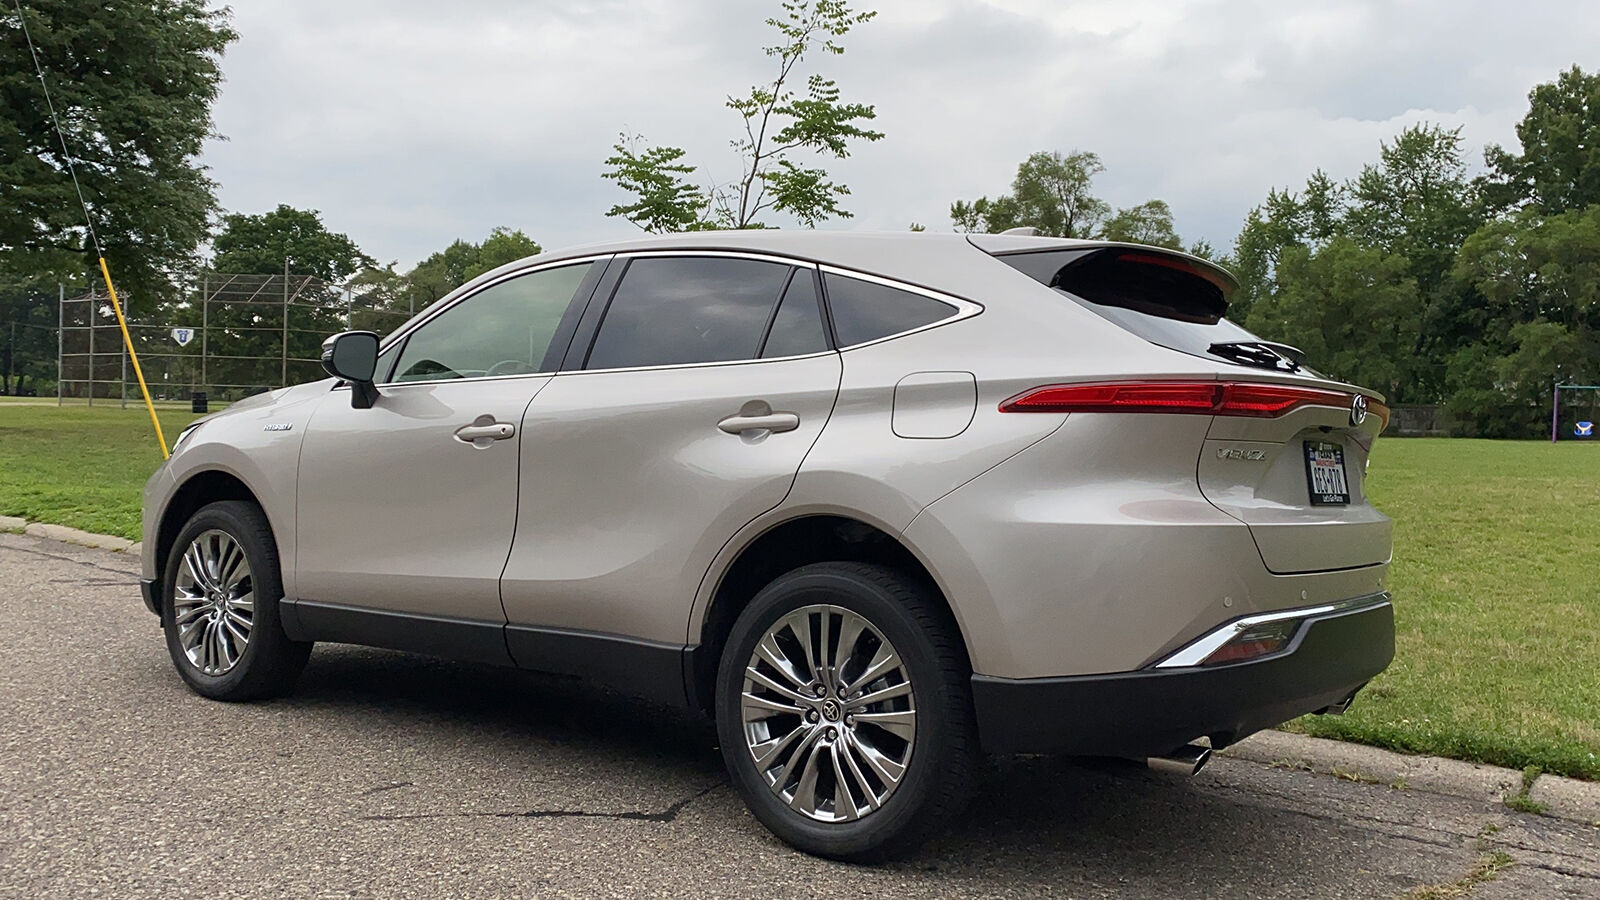 2021 Toyota Venza Hybrid Suv Combines Lexus Style With Toyota Value Auto Features Nny360 Com